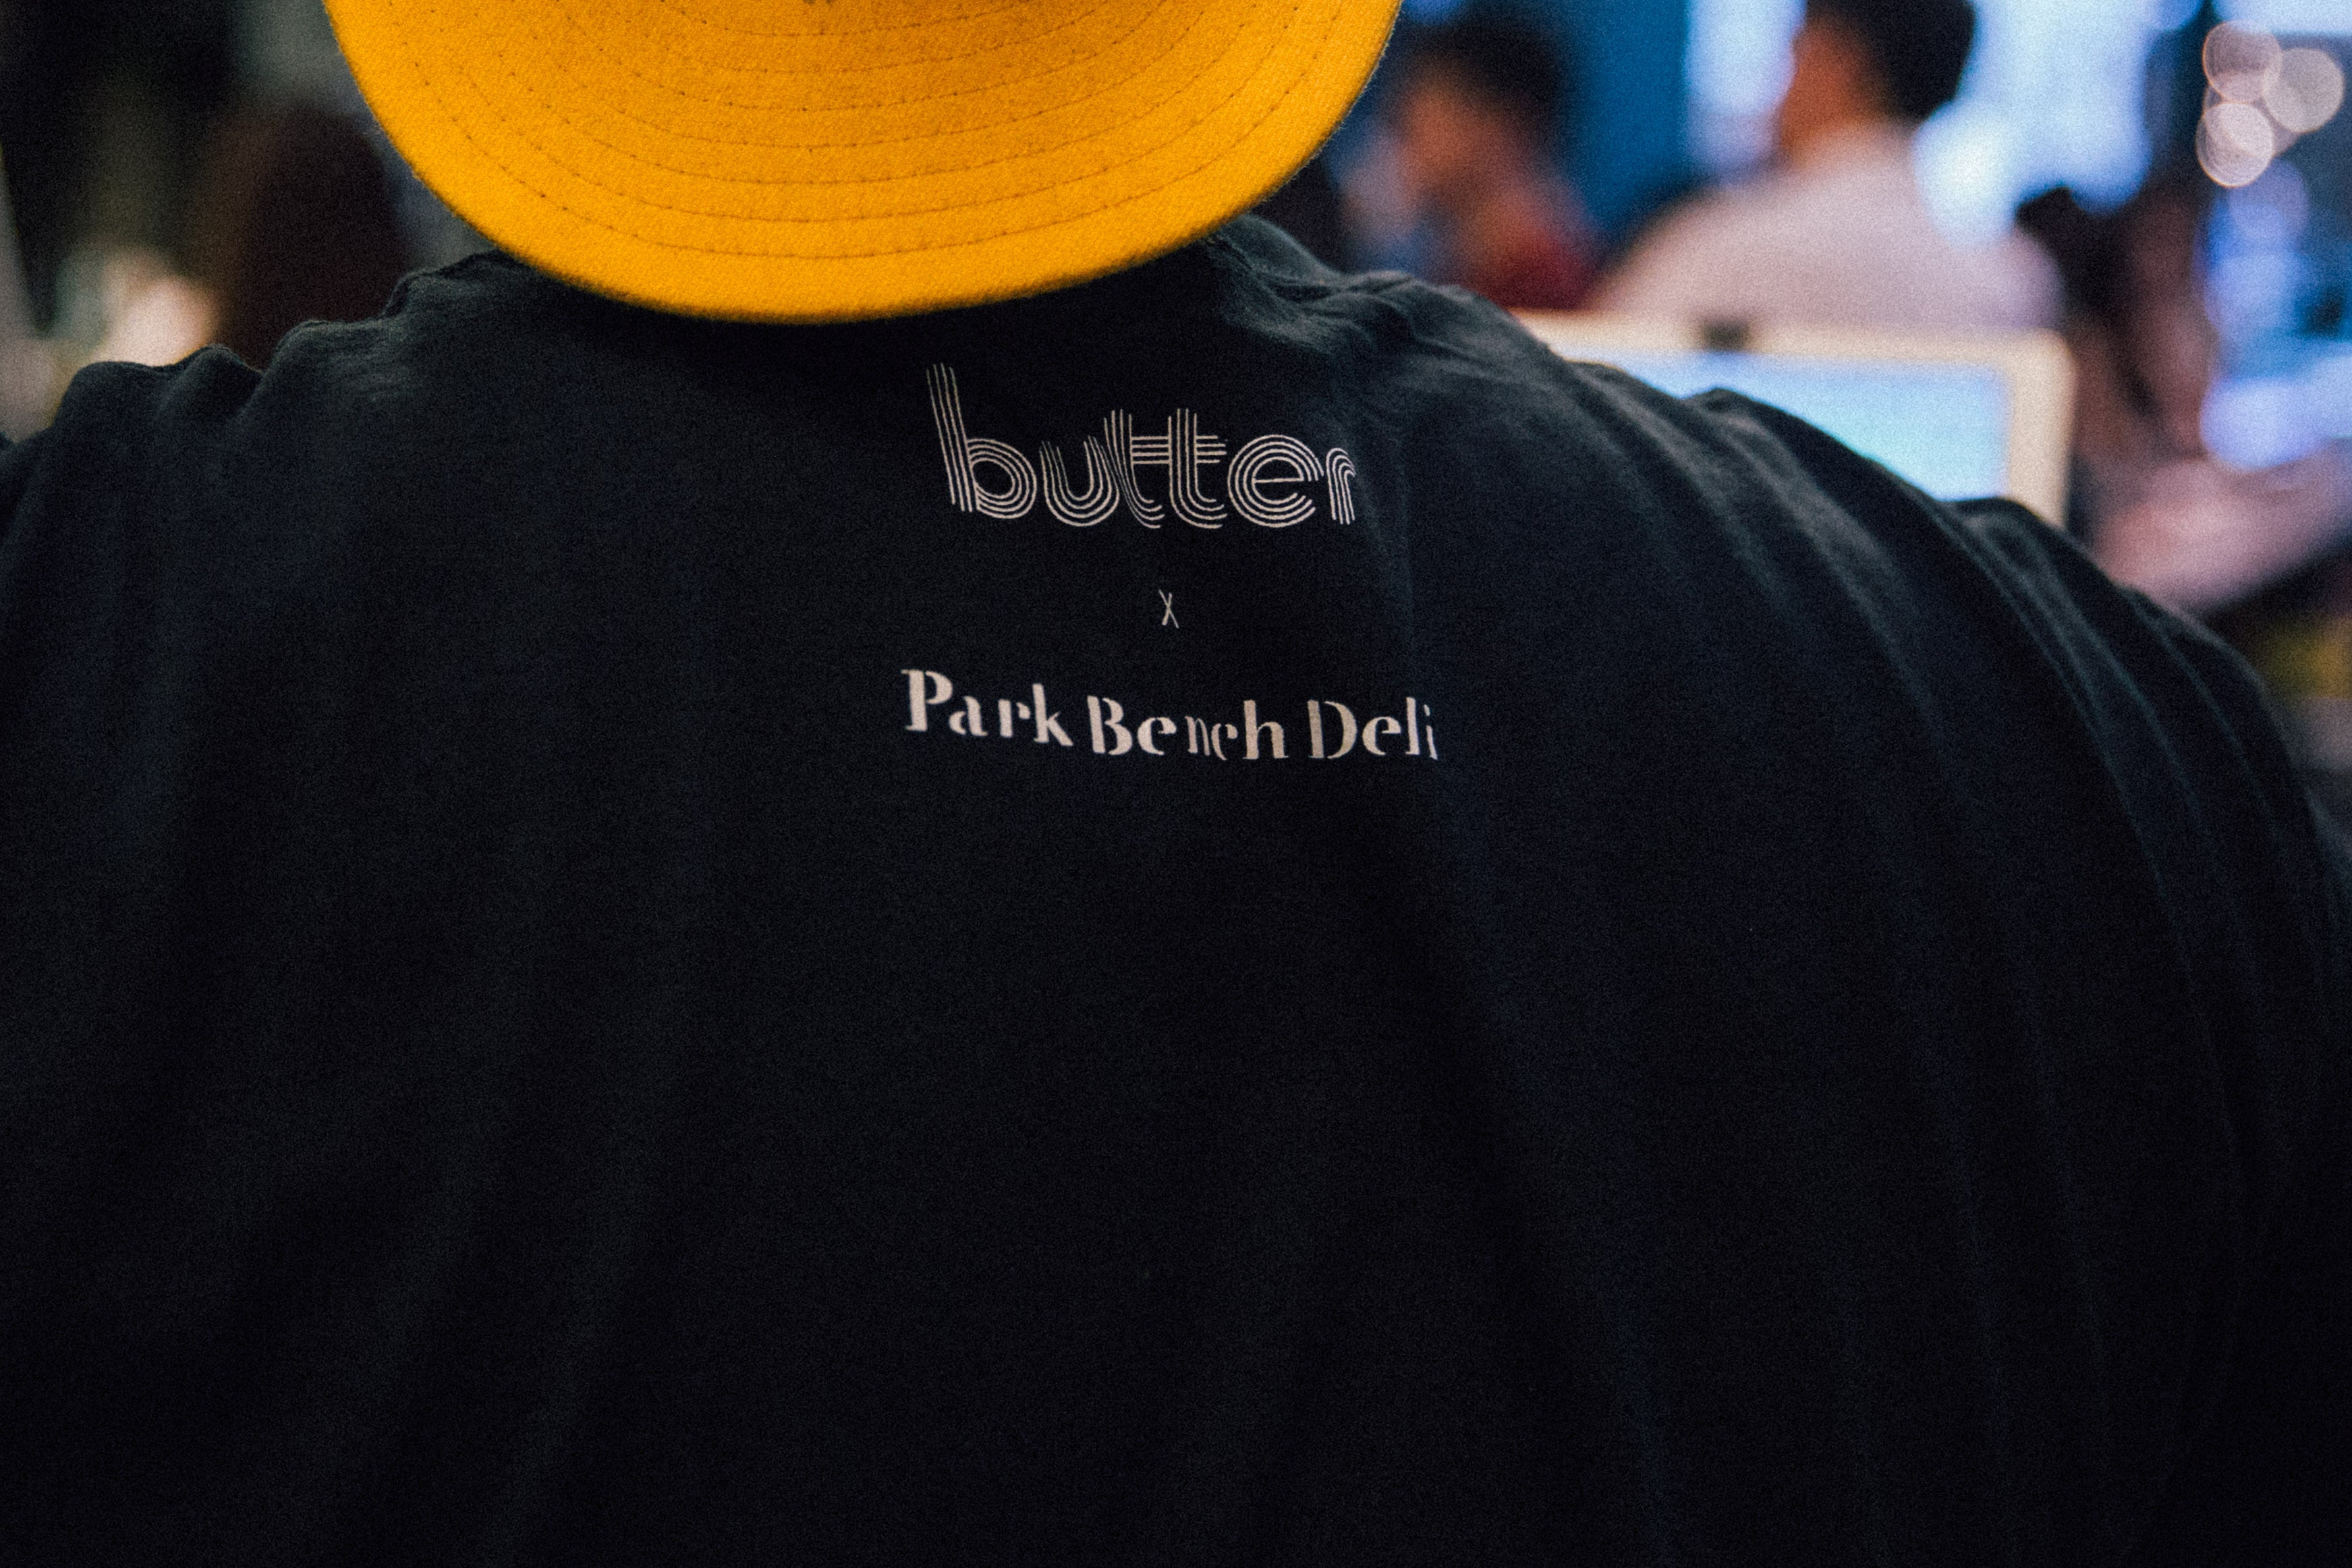 BUTTER SYDNEY X PARK BENCH DELI SINGAPORE FRIED CHICKEN POP UP